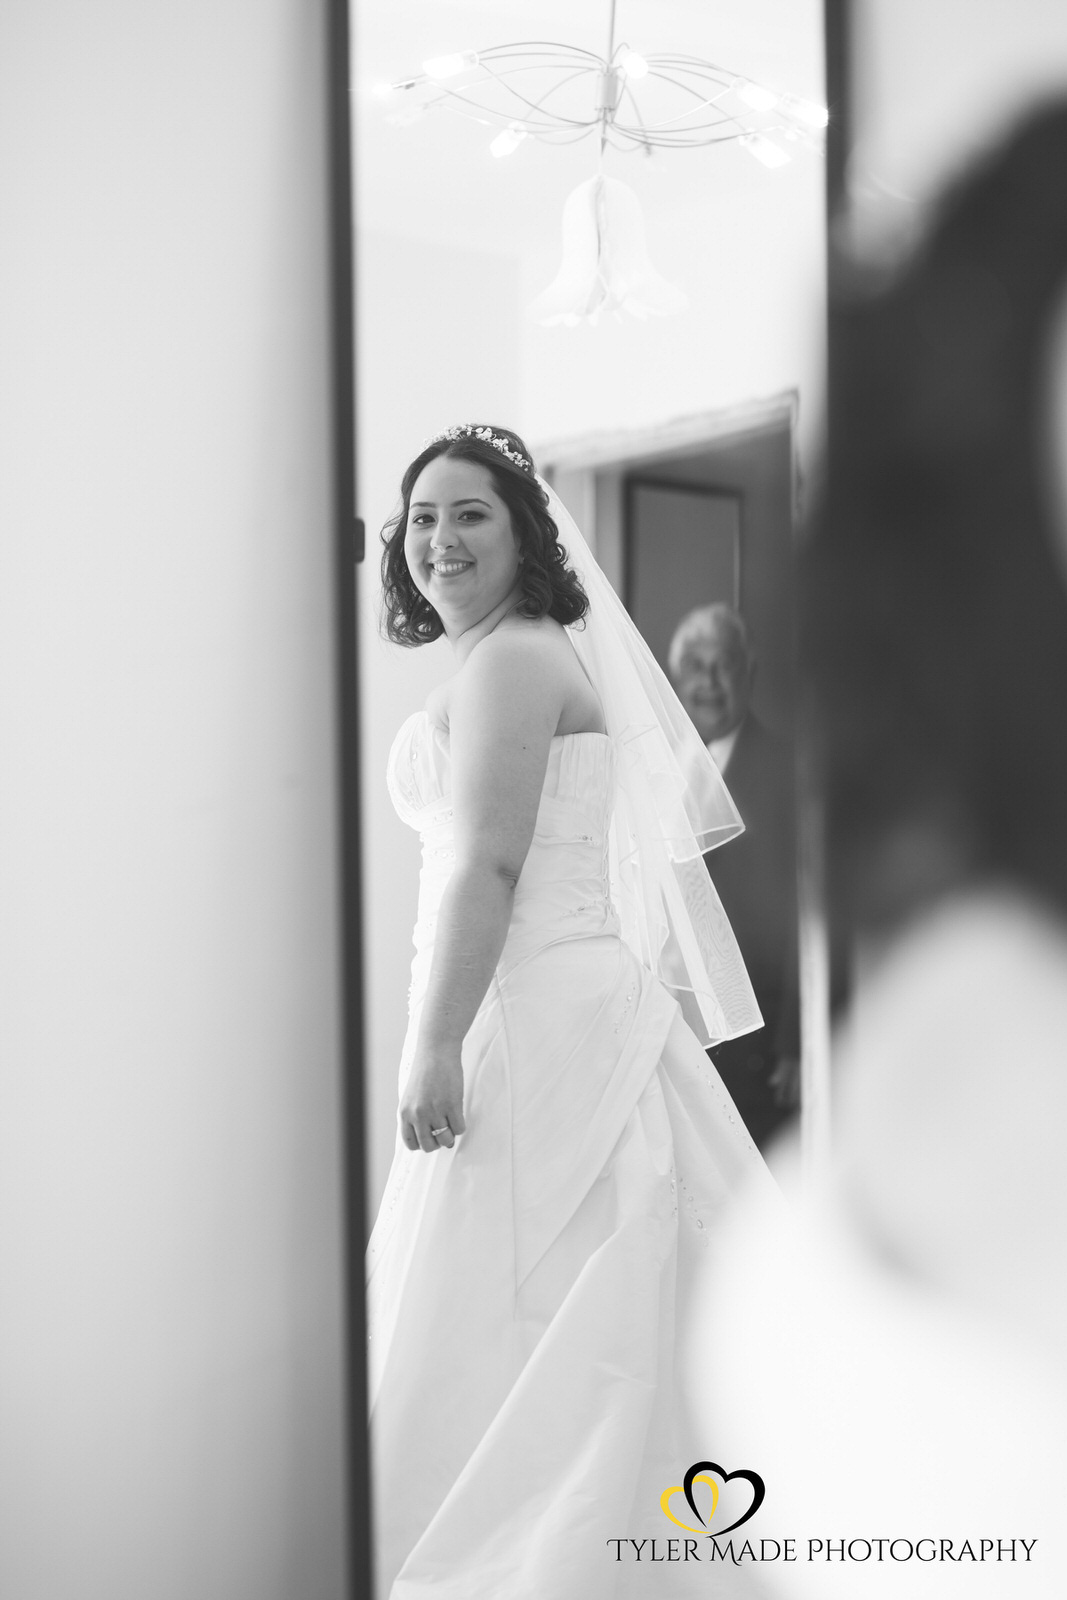 Bride catching a glimpse of herself in the mirror during bridal prep by Tyler Made Photography